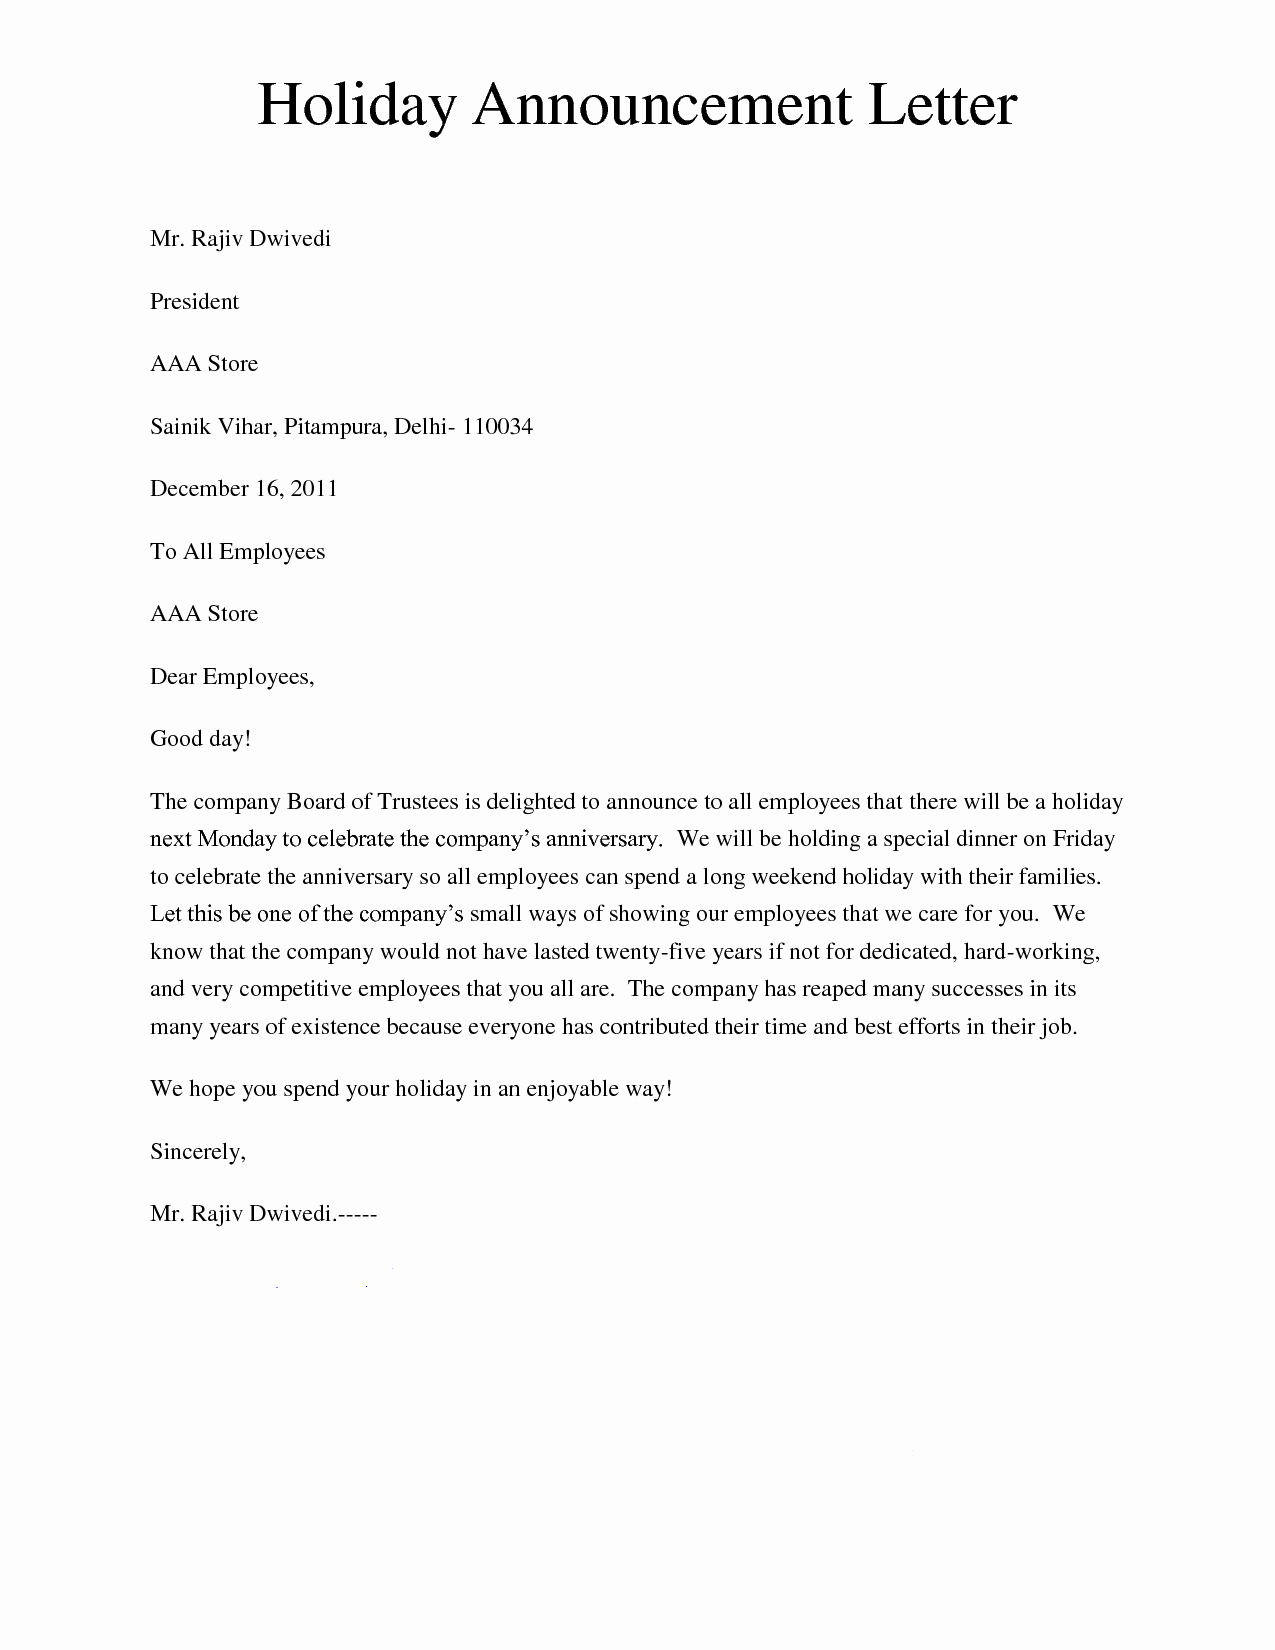 Job Notice Sample Awesome Holiday Announcement Letter Giving A Letter to Inform